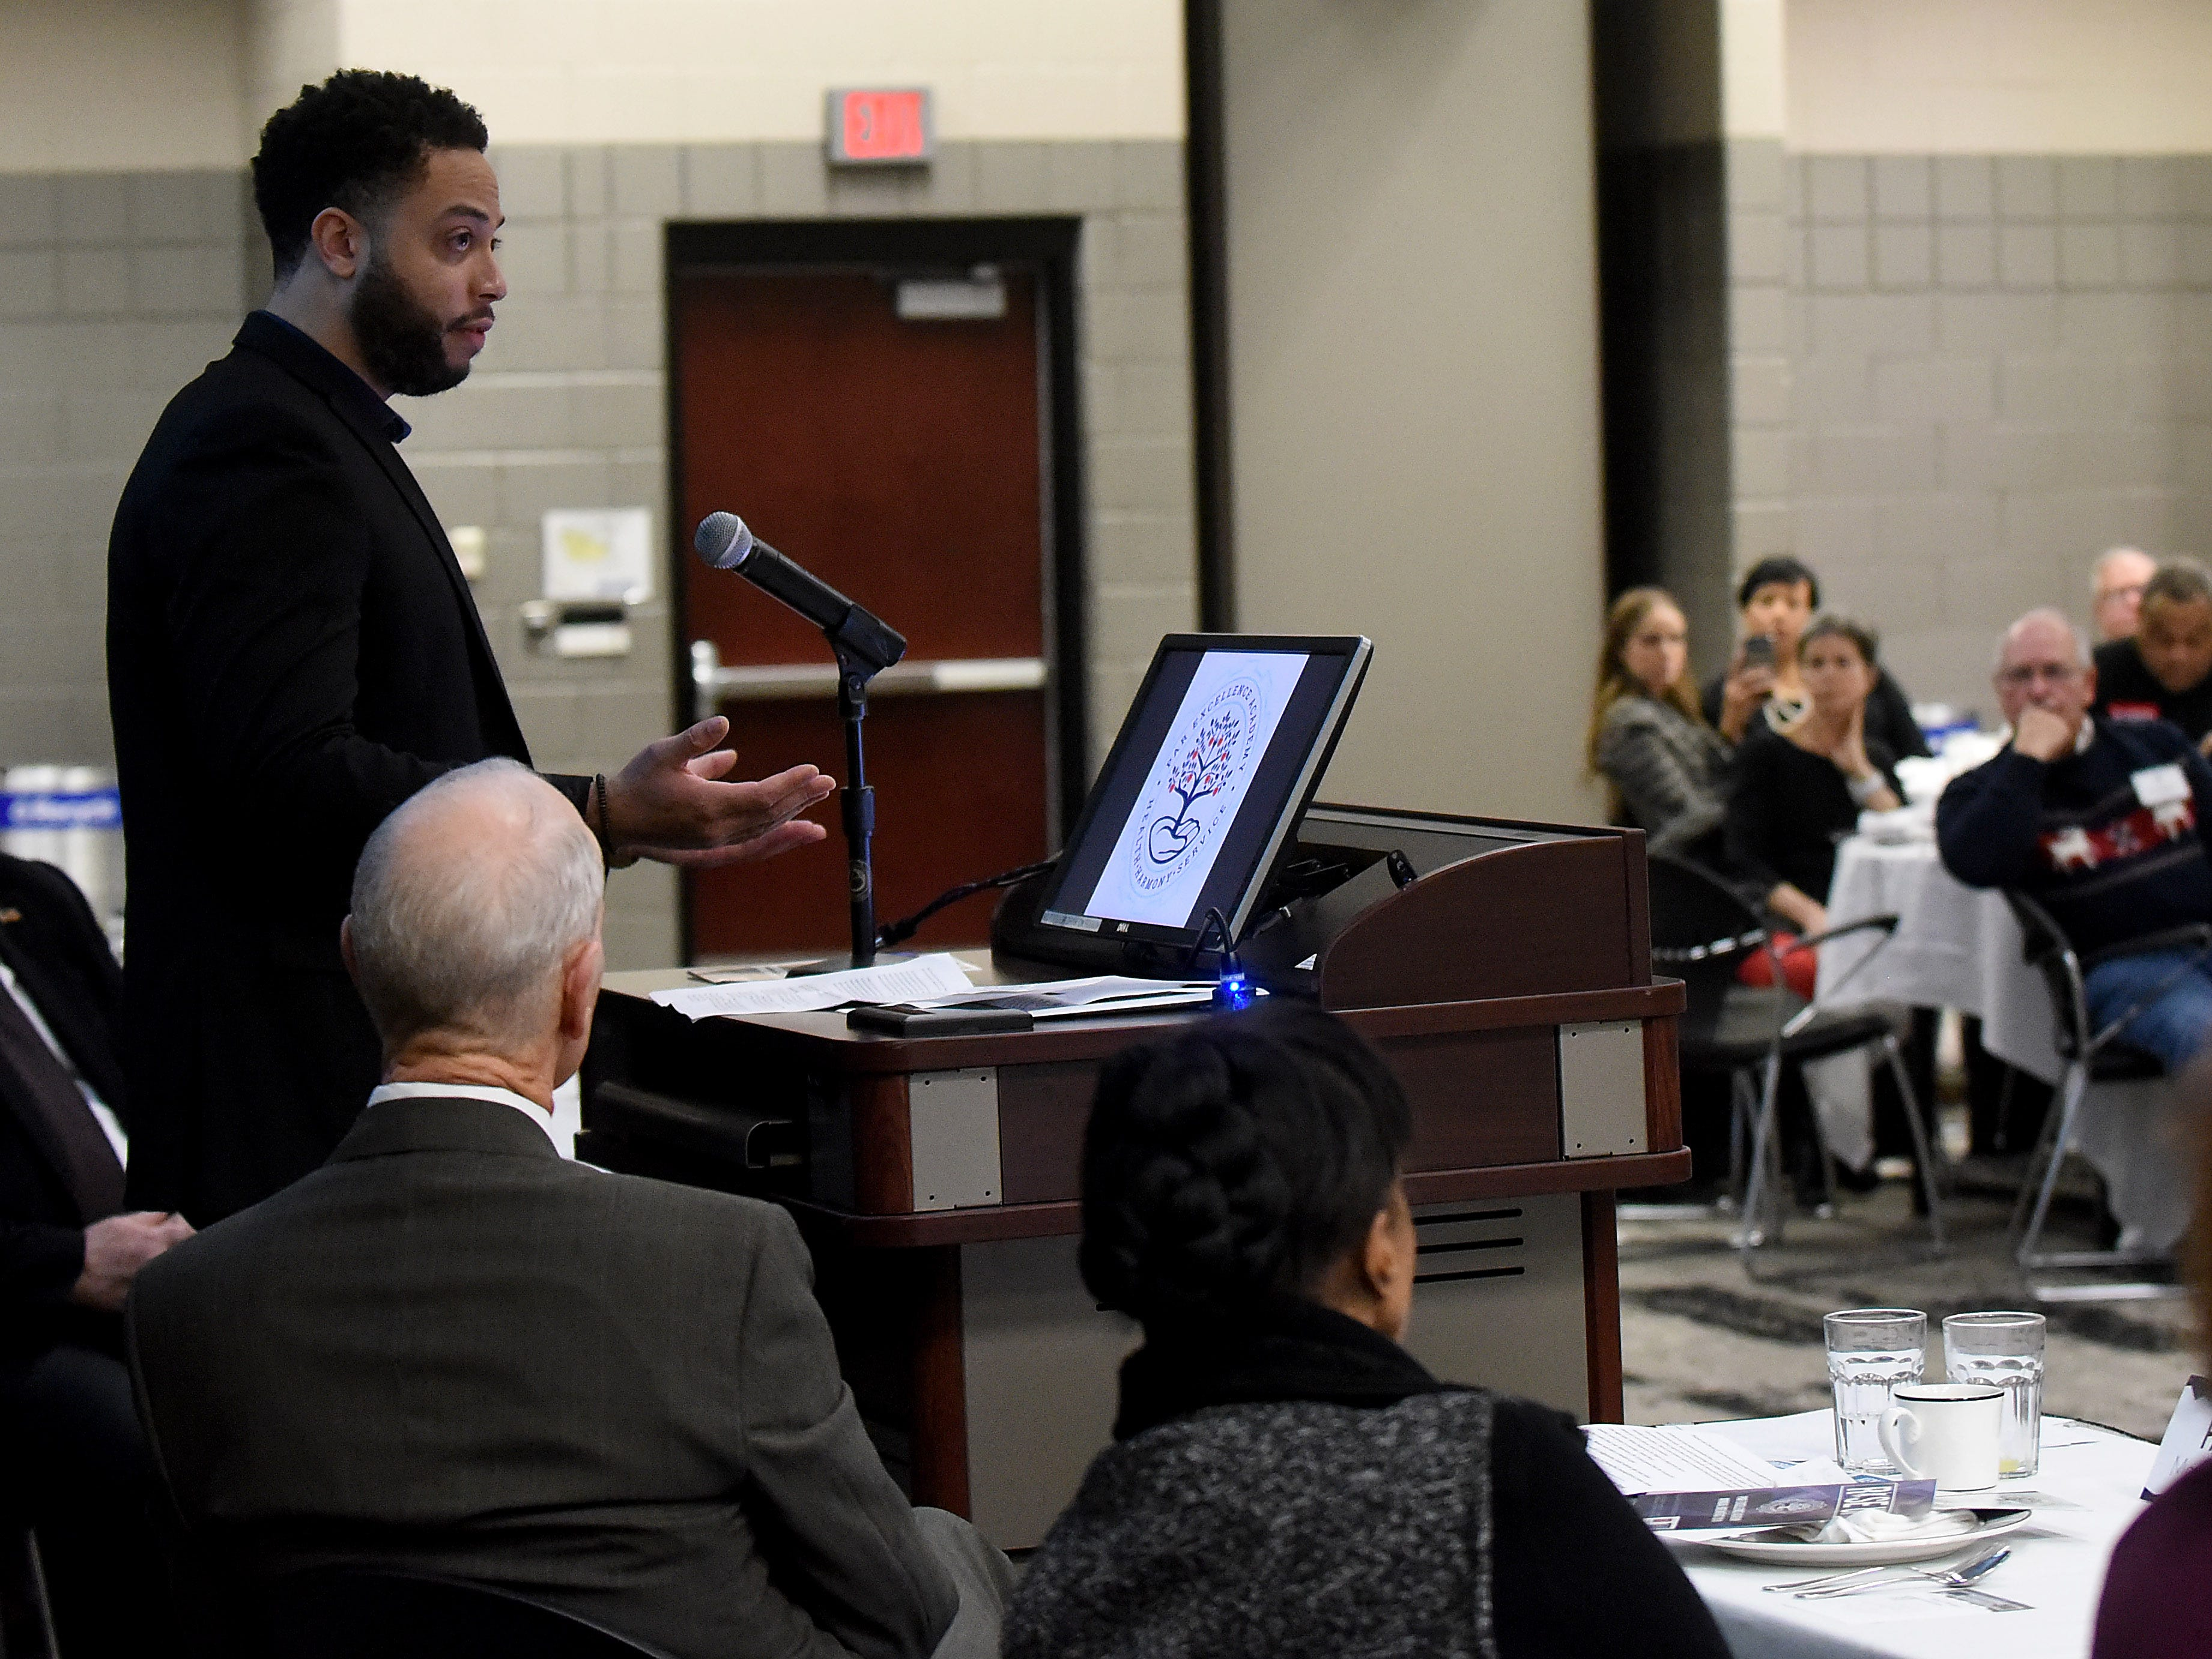 Keynote speaker Christopher B. Noble uses his address to called for a unification of humanity quoting Martin Luther King Jr.'s speech by King at the Hungry Club Forum in Georgia during Par Excellence Academy's annual Martin Luther King Jr. Day breakfast at John Gilbert Reese Center on the campus of OSU Newark.